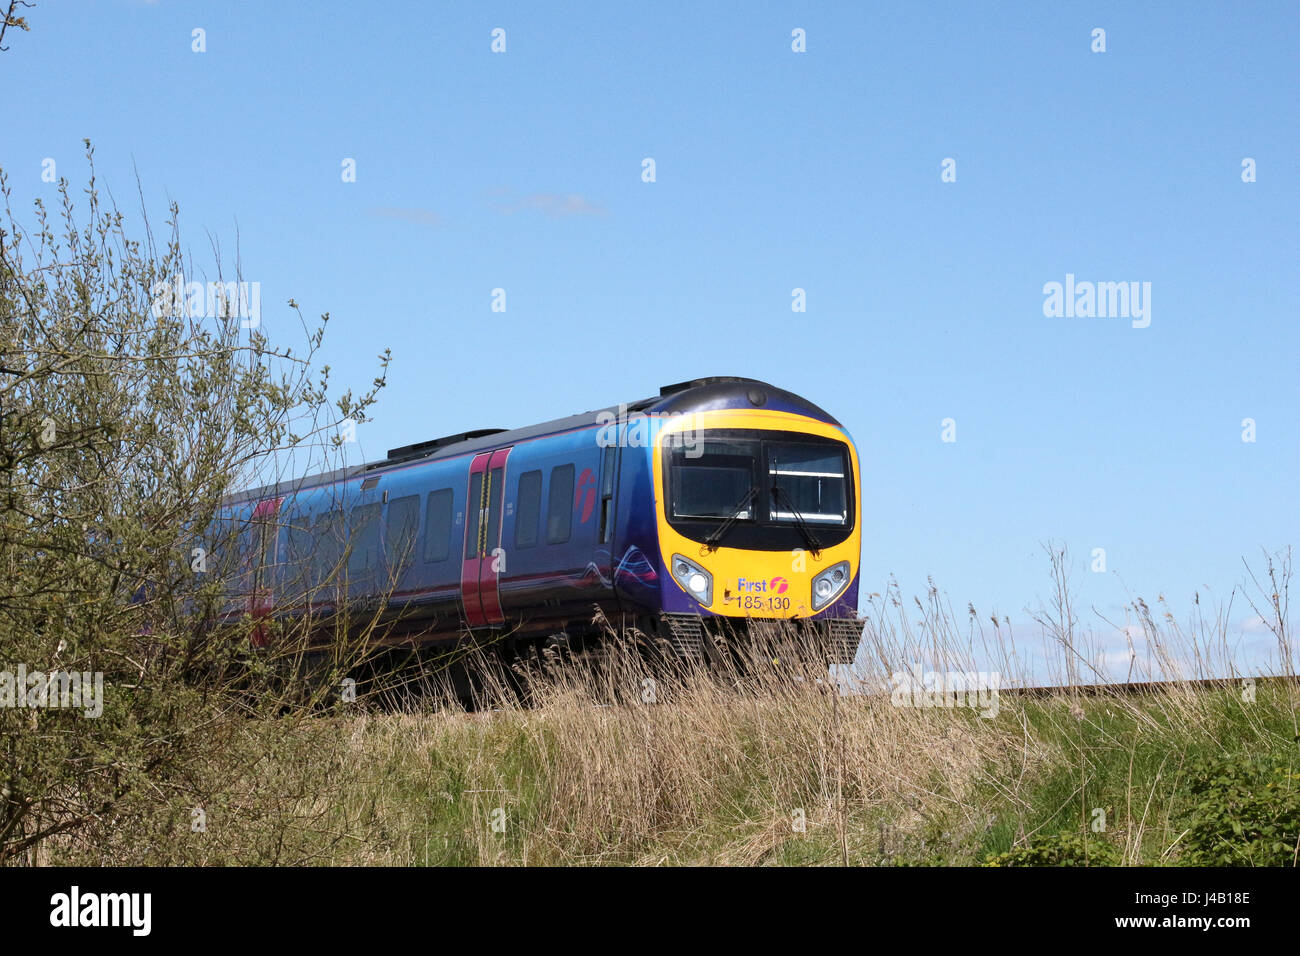 Desiro diesel multiple unit in First Transpennine livery on embankment against blue sky in countryside. - Stock Image